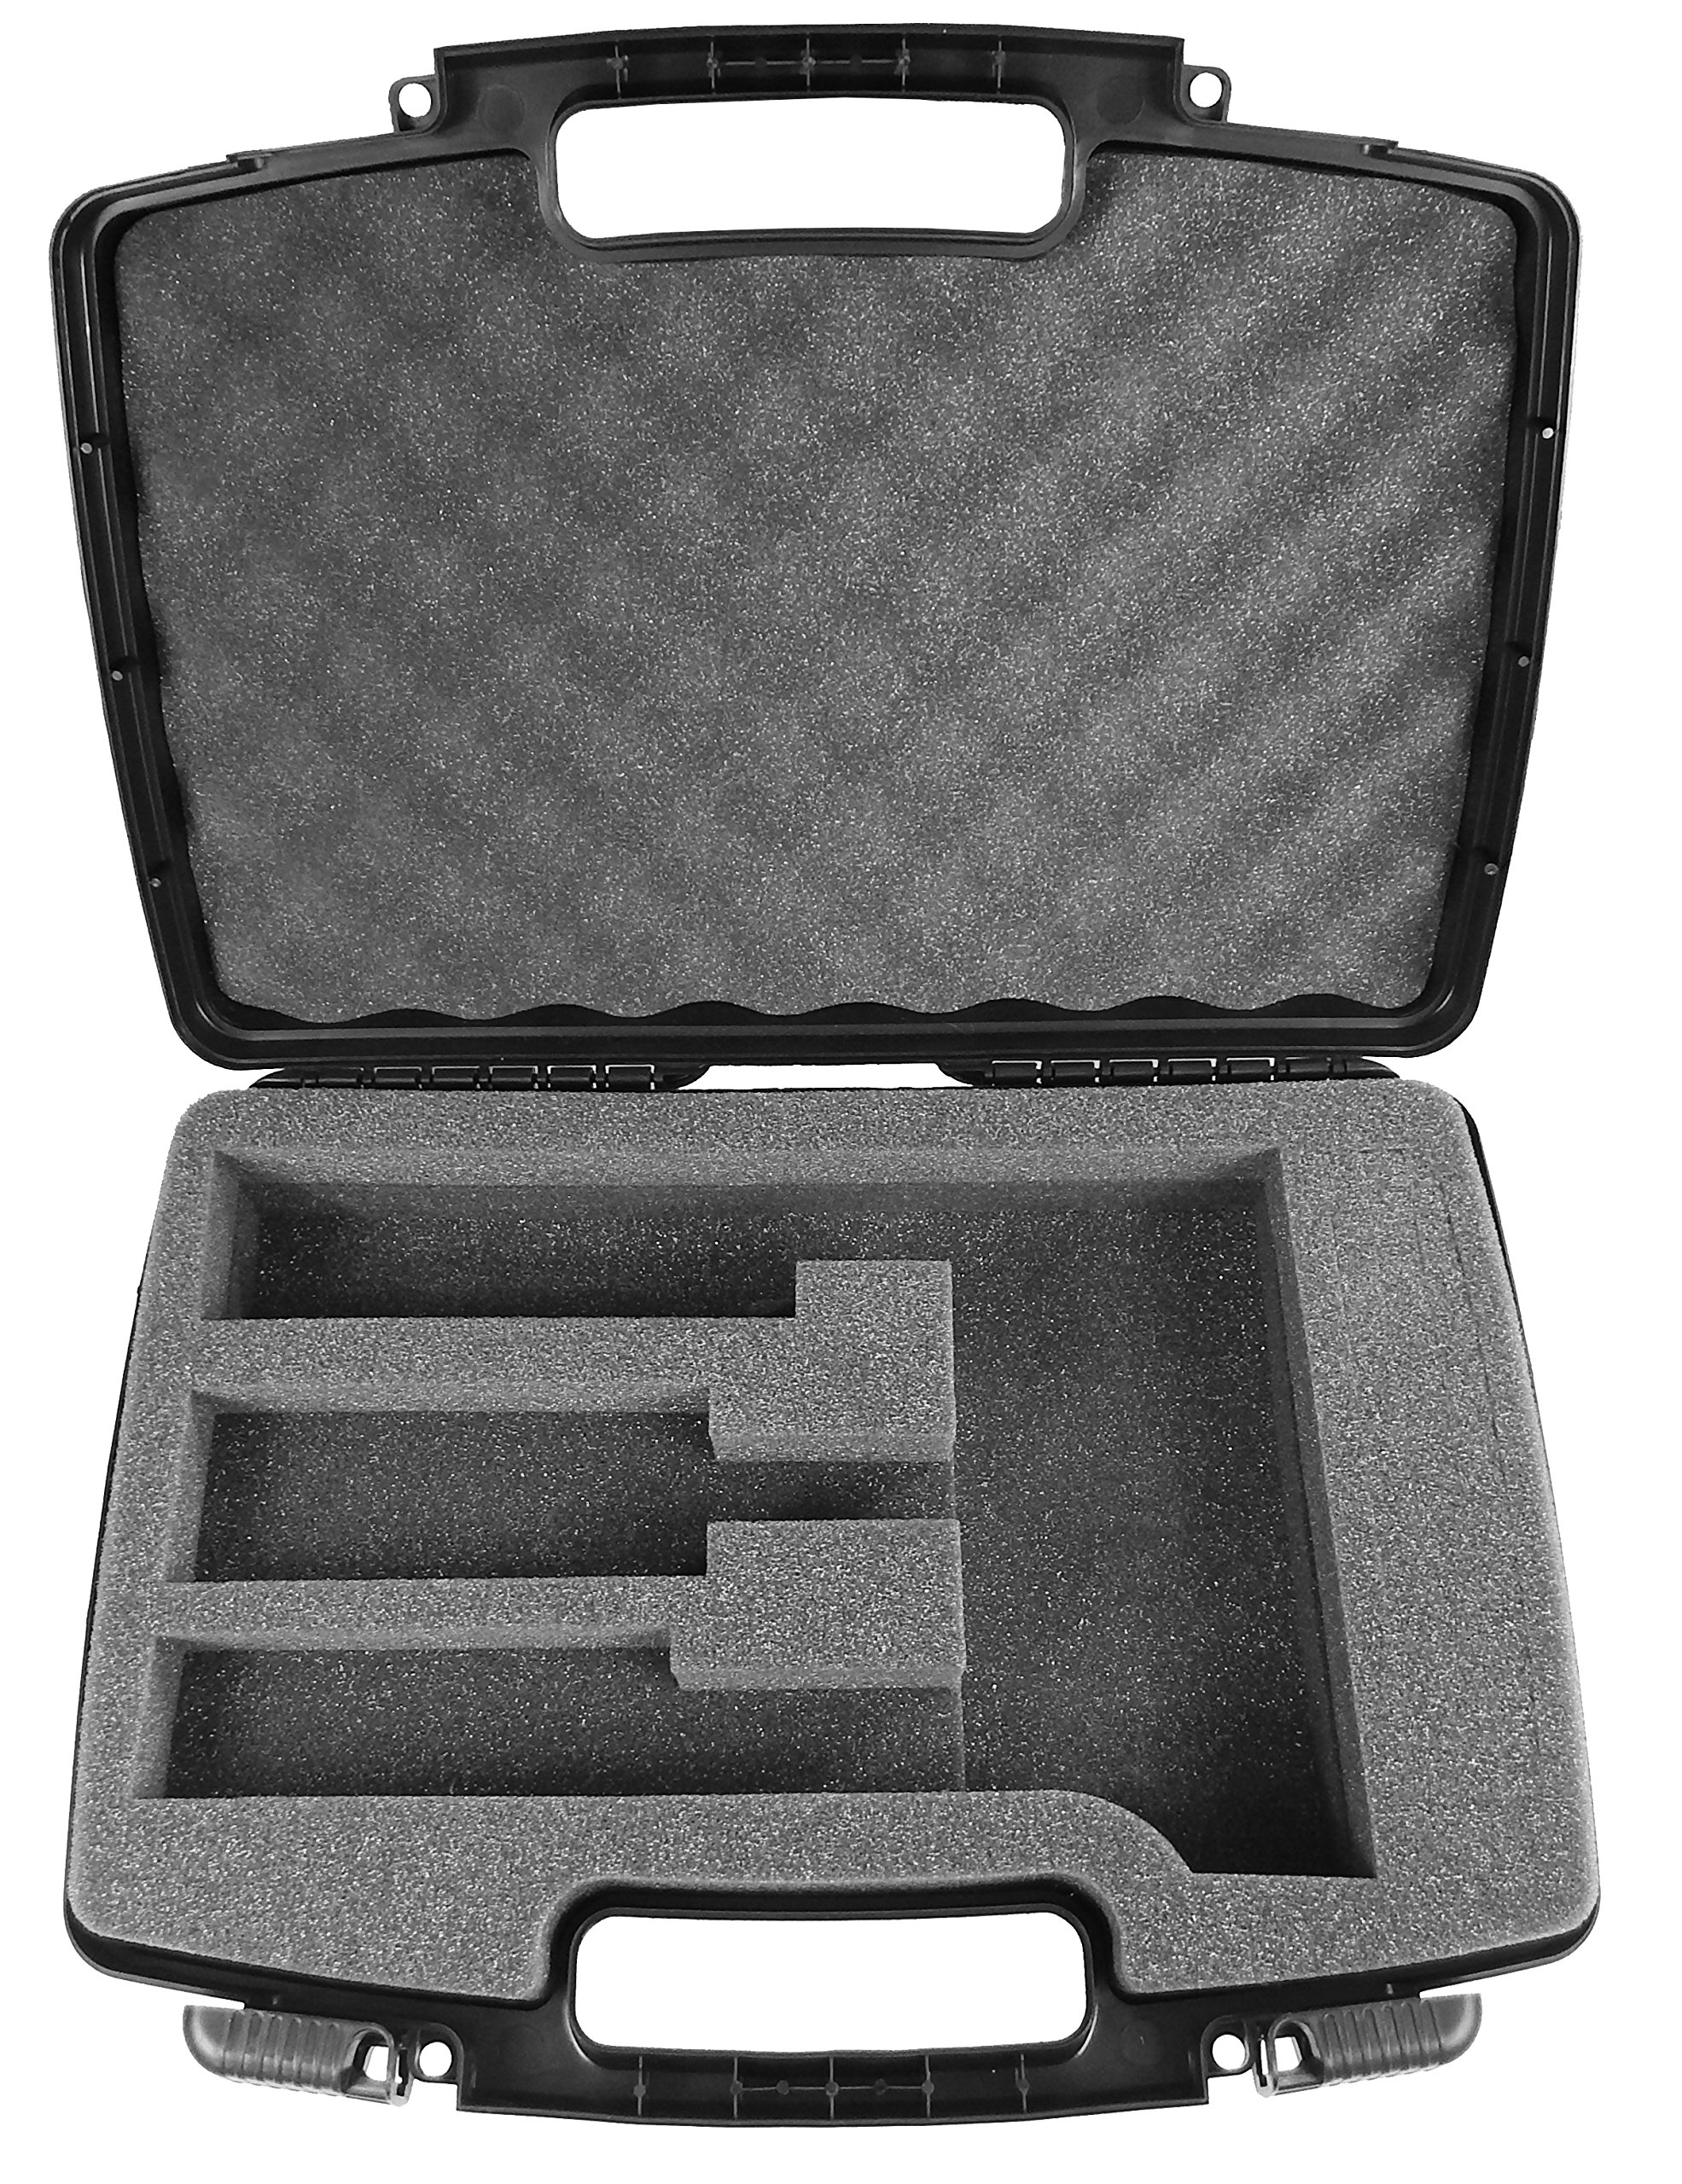 HAIRCUT Kit Custom Case For Clipper, Trimmer, Finisher Designed For Stylist or Barber holds Oster Classic 76, Wahl, Andis and or Cordless Clippers, Blades, Scissors, Comb and Hair Accessories